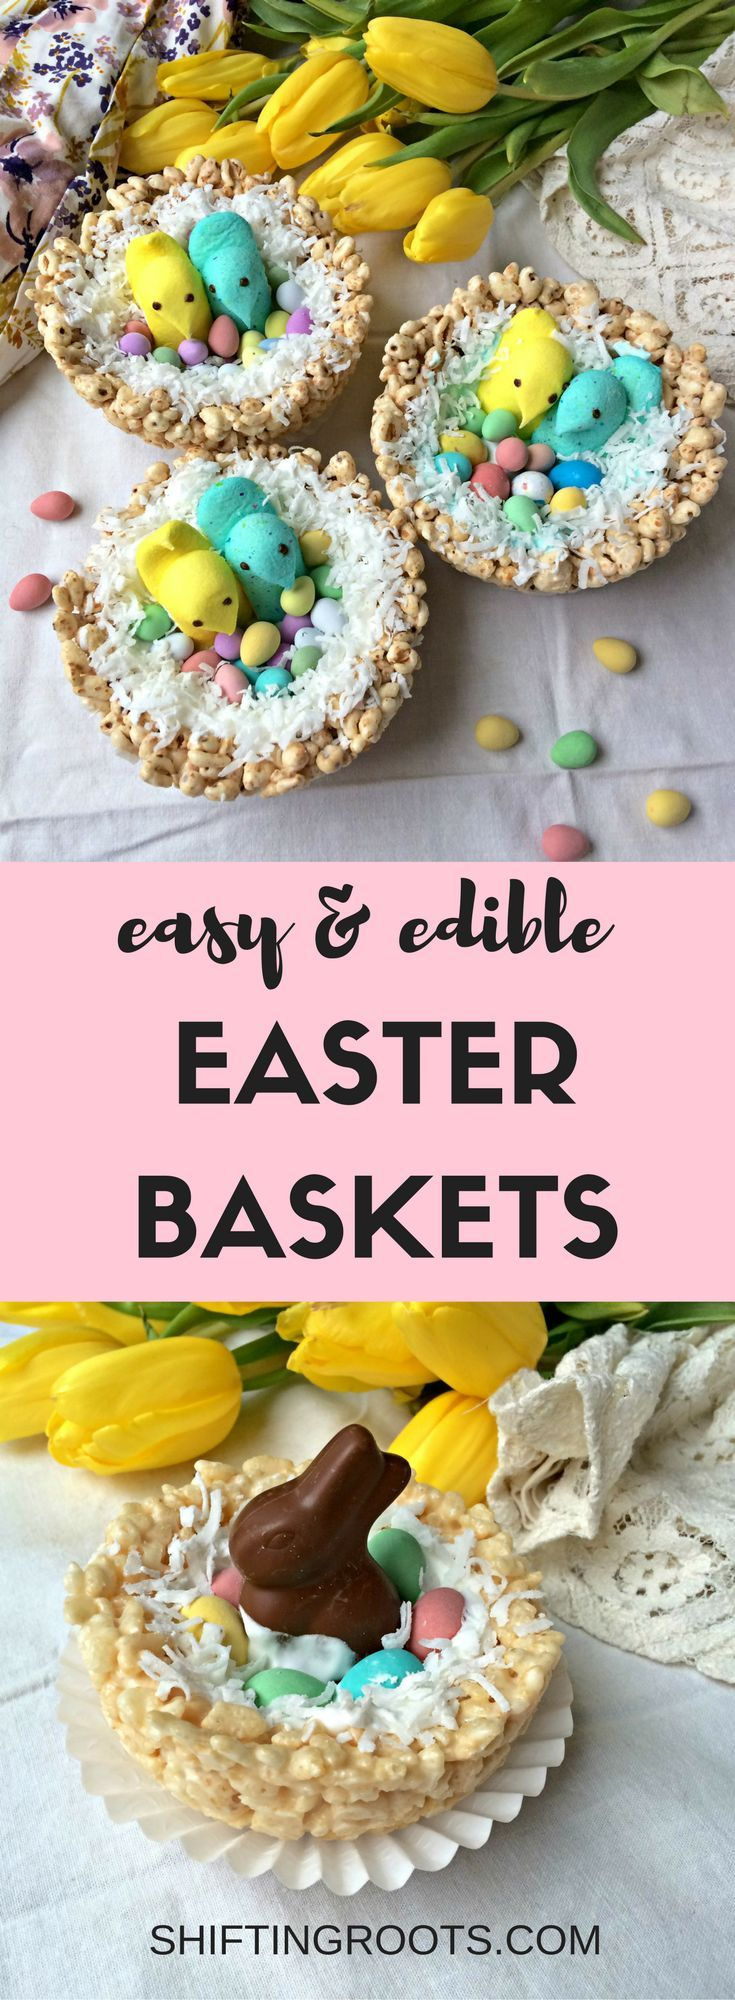 Check out this creative DIY Easter basket tutorial--everything is completely edible! Make the nest from Rice Krispies or puffed wheat,